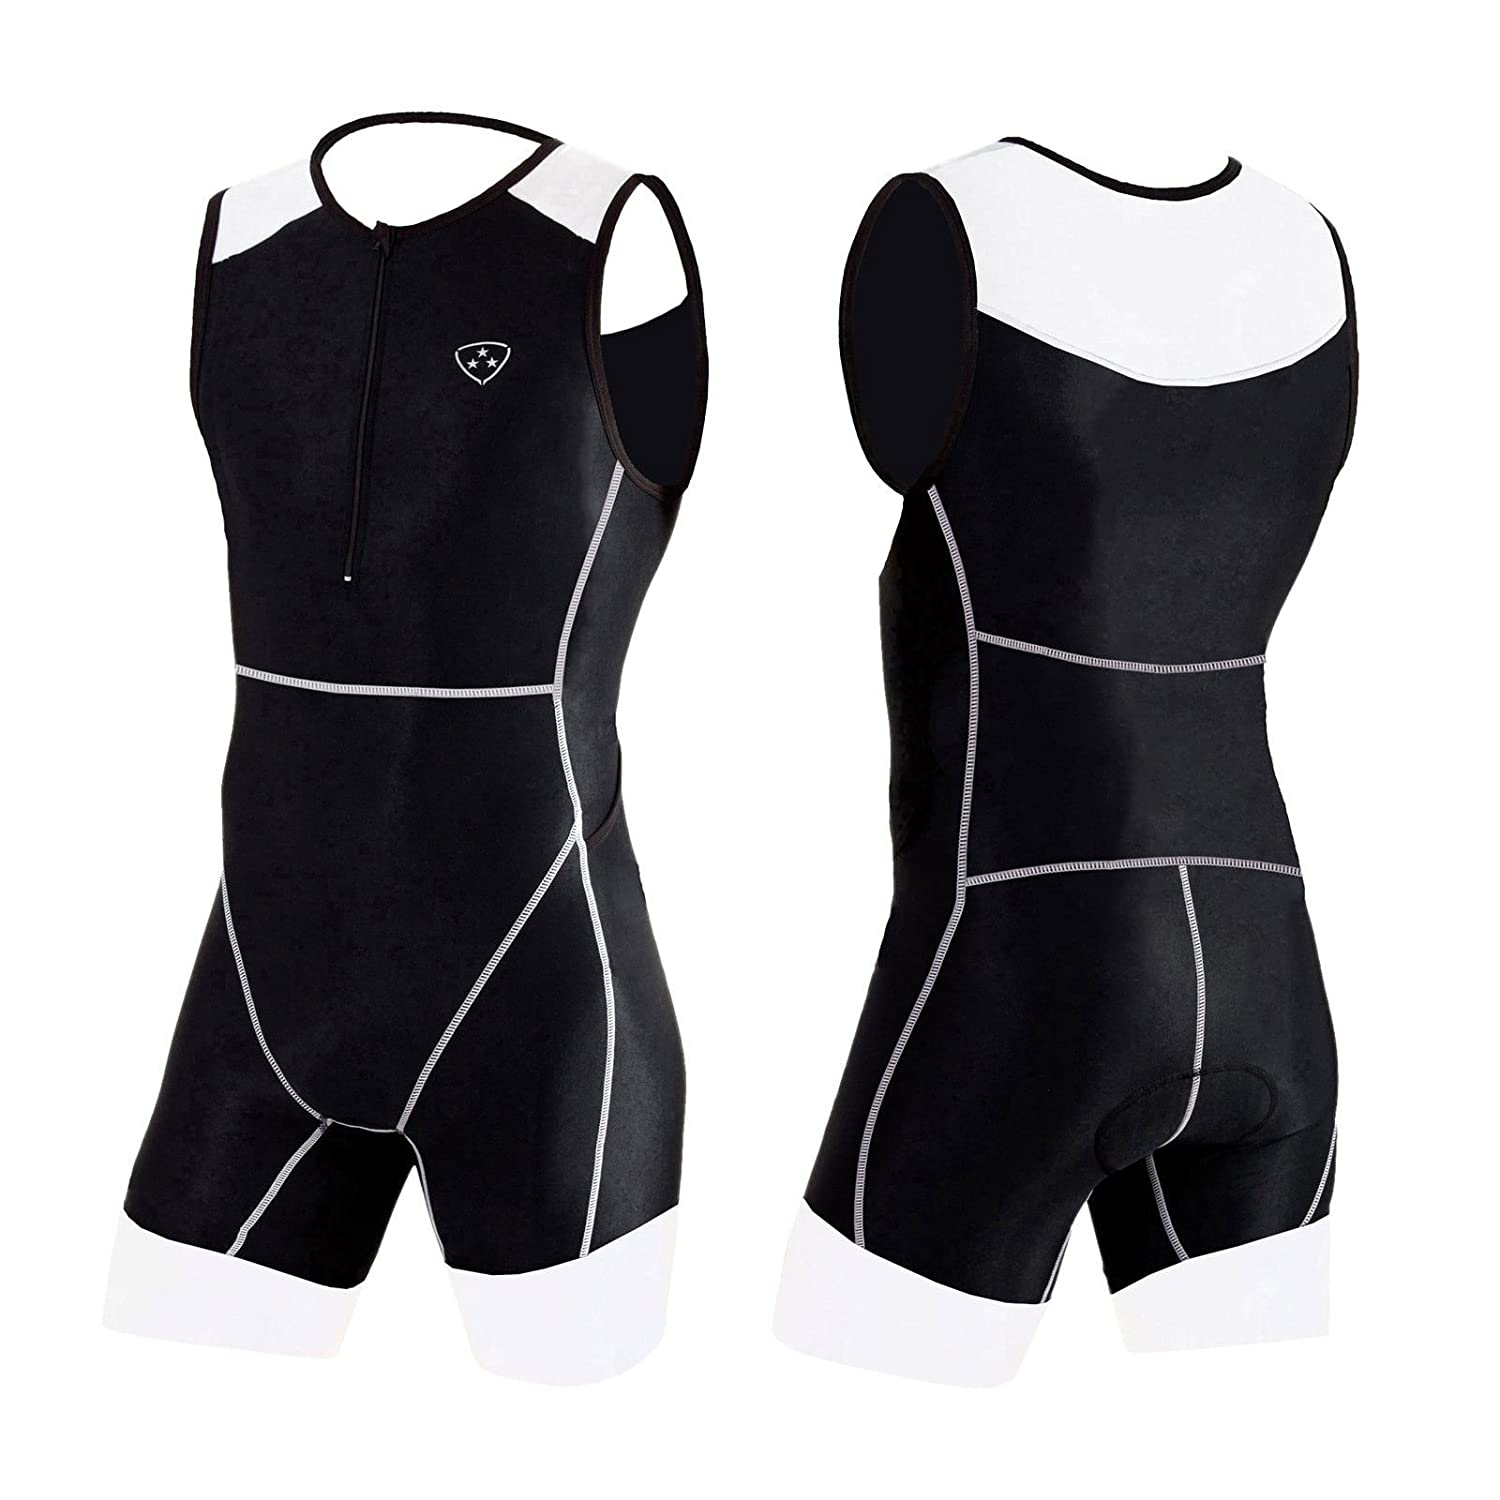 Herren Triathlonanzug Tri Suit XL) hera international